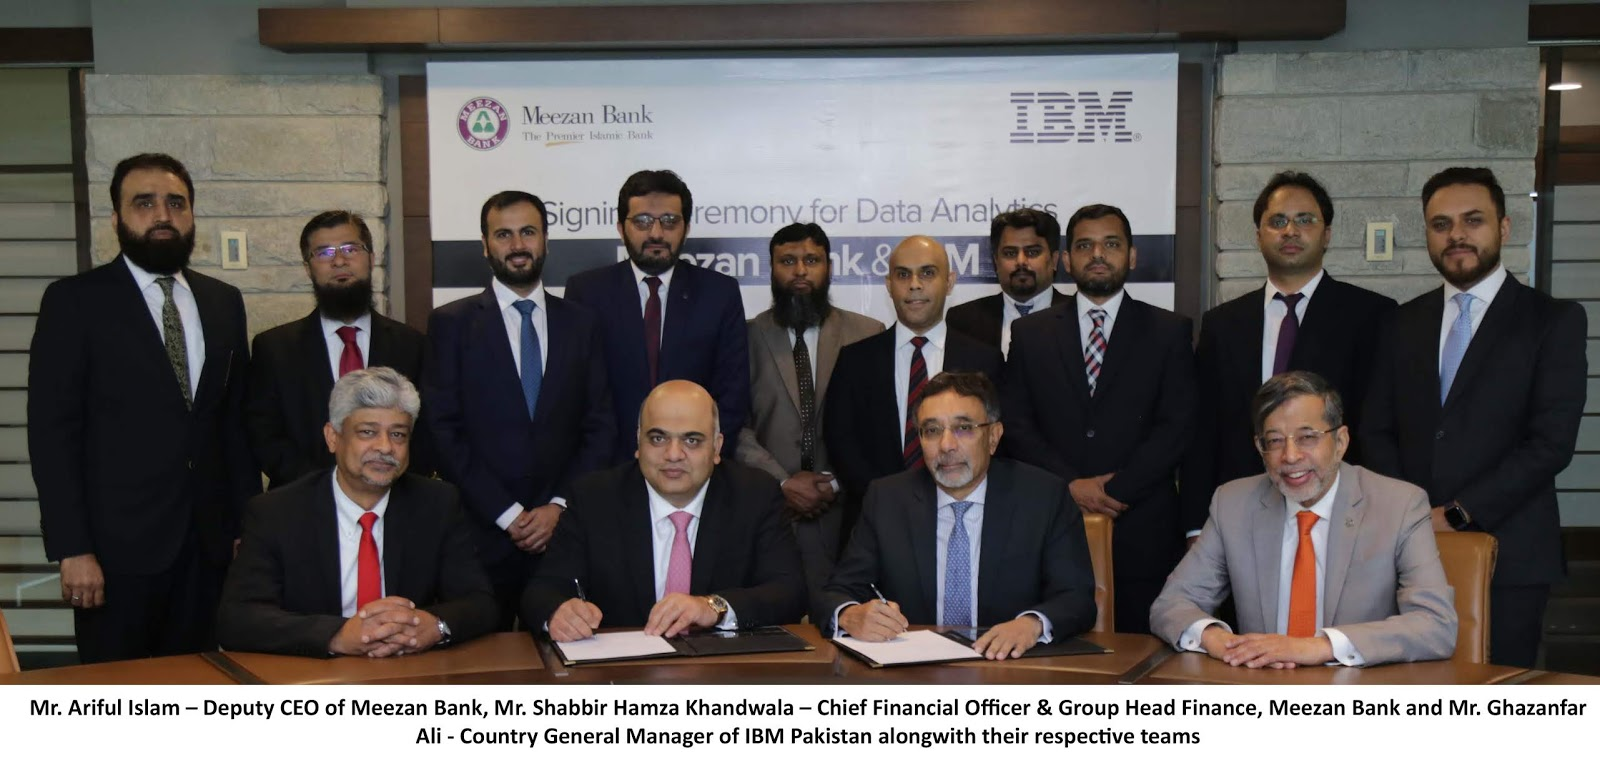 Meezan Bank partners with IBM Analytics to Create Data-Driven Customer Experiences!